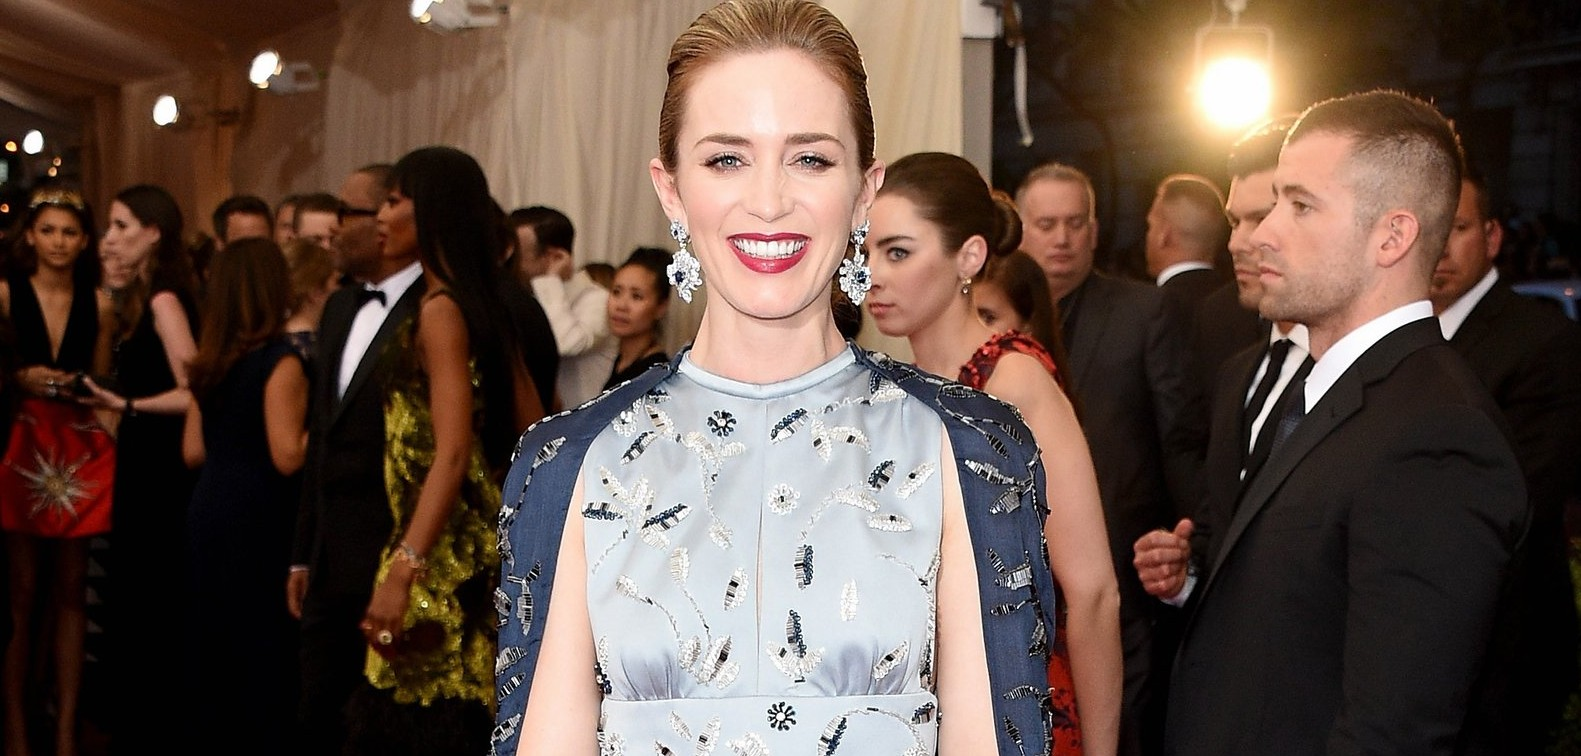 China: Through The Looking Glass Costume Institute Benefit Gala – First Look at Emily Blunt